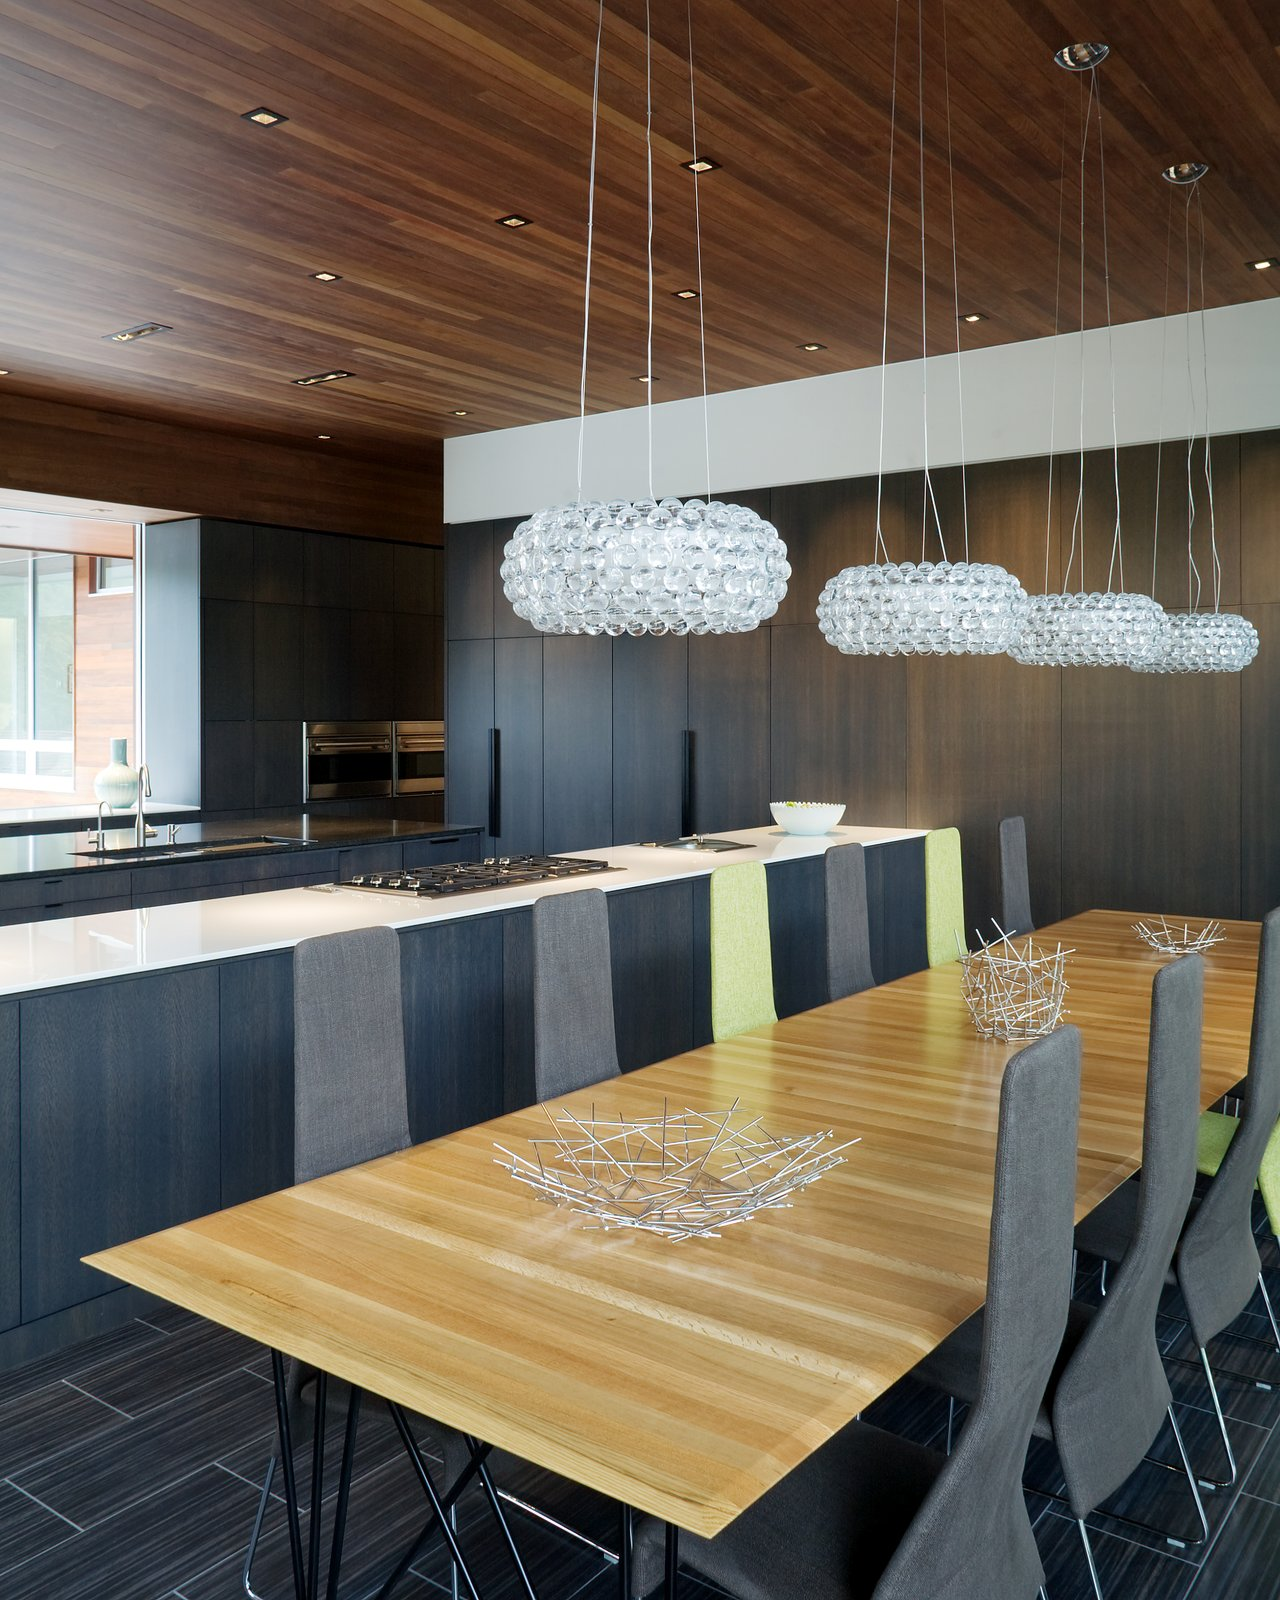 Adjacent to the internal courtyard, the long galley kitchen blends a mixture of dark materials and colors. The appliances are mostly concealed into the walls to create a clean, uncluttered atmosphere. The table was custom-made by Hufft.  Photo 4 of 10 in A Bold Home Creatively Combines Curves and Modern Lines